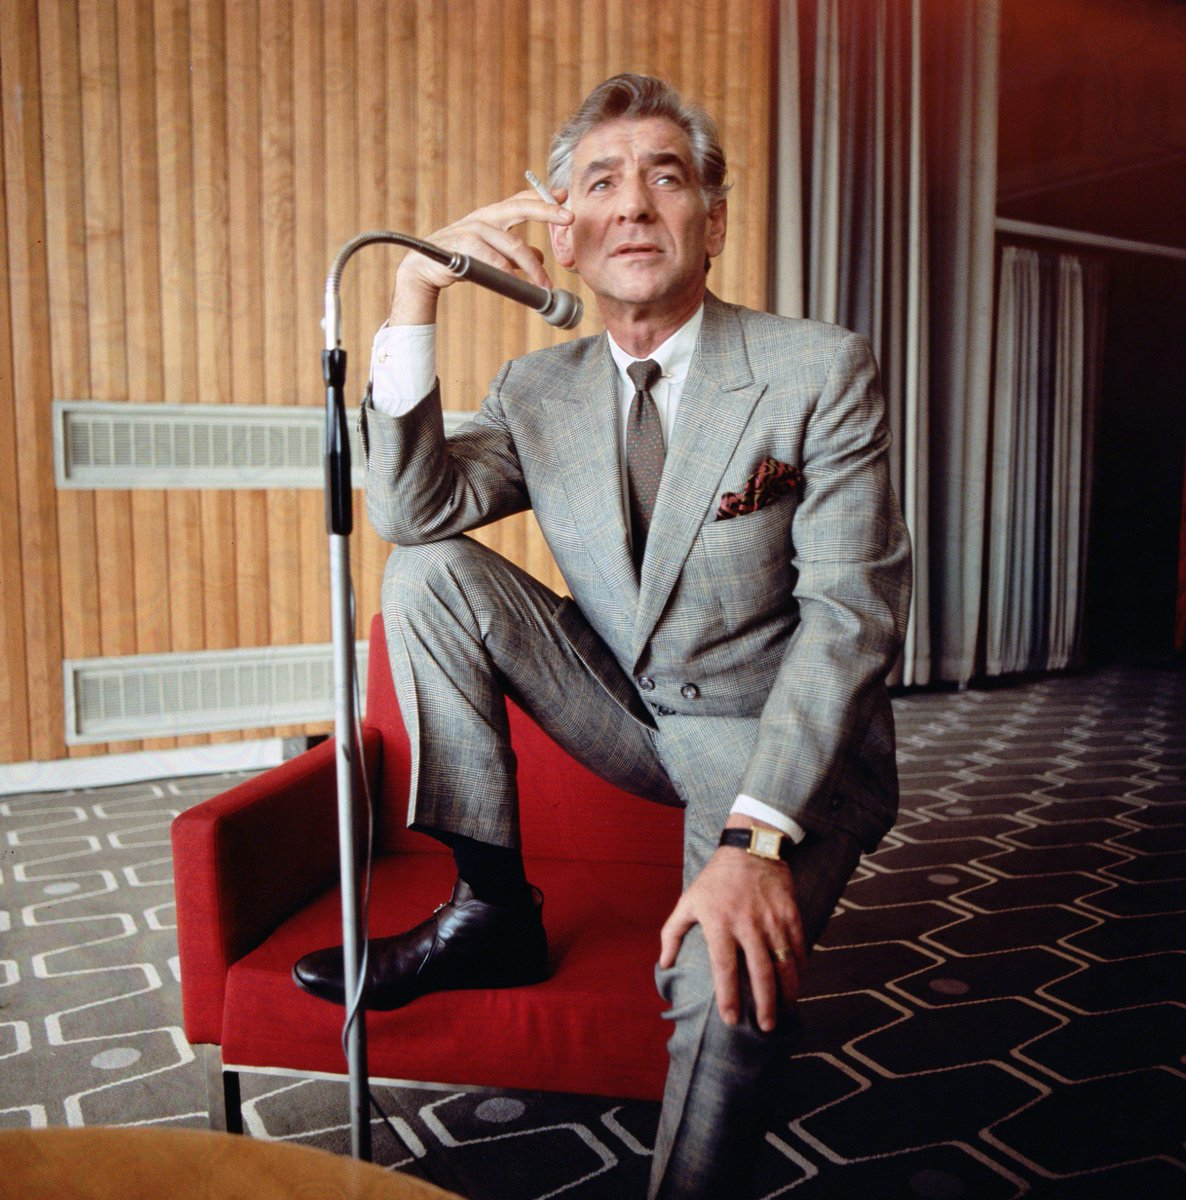 """""""To achieve great things, two things are needed: A plan, and not quite enough time."""" -Leonard Bernstein #QOTD https://t.co/WAXHbbyZk7"""